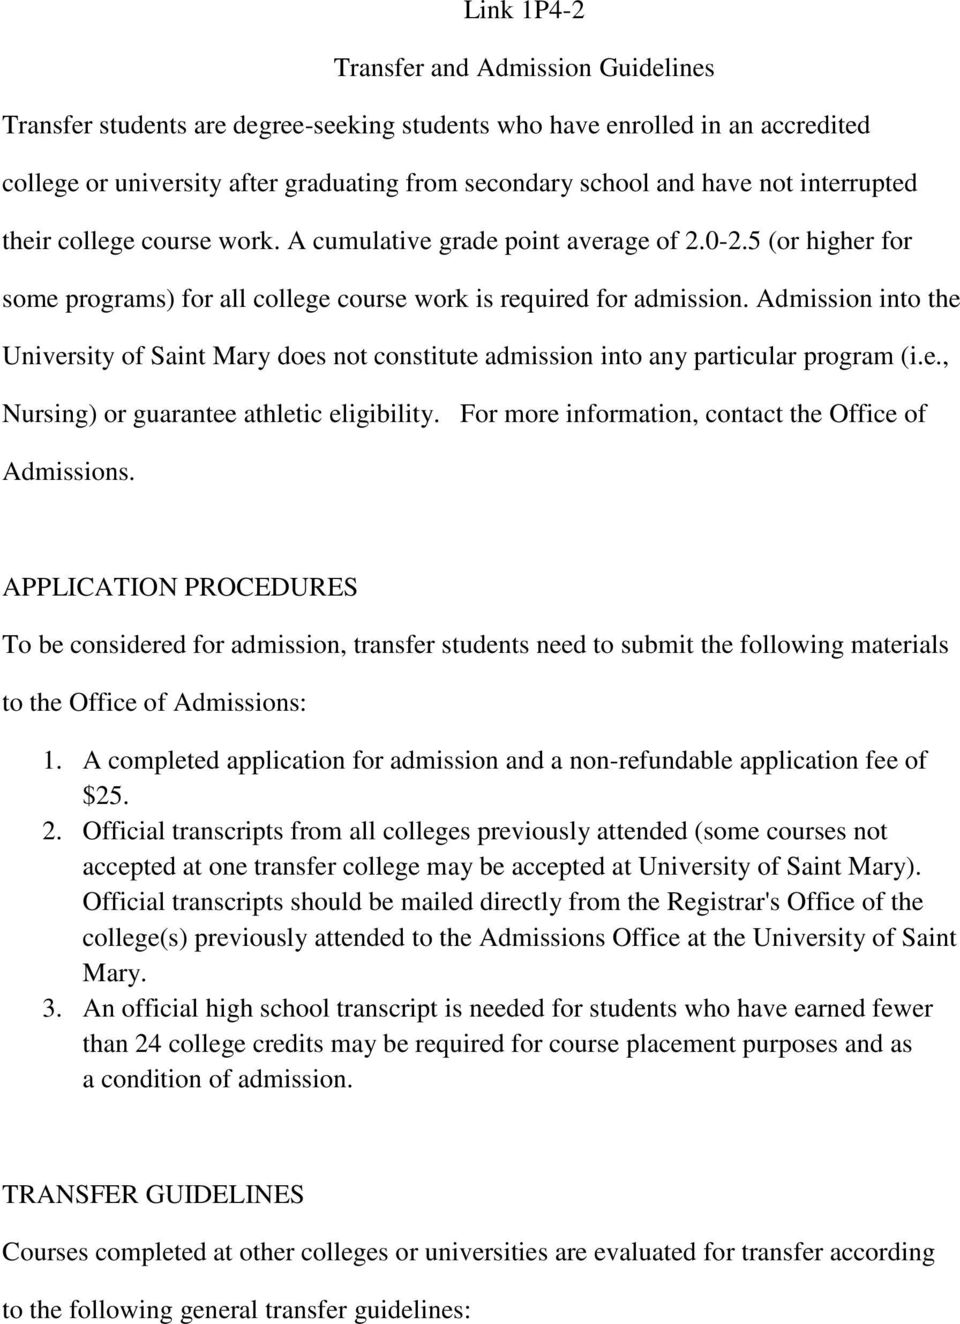 Admission into the University of Saint Mary does not constitute admission into any particular program (i.e., Nursing) or guarantee athletic eligibility.